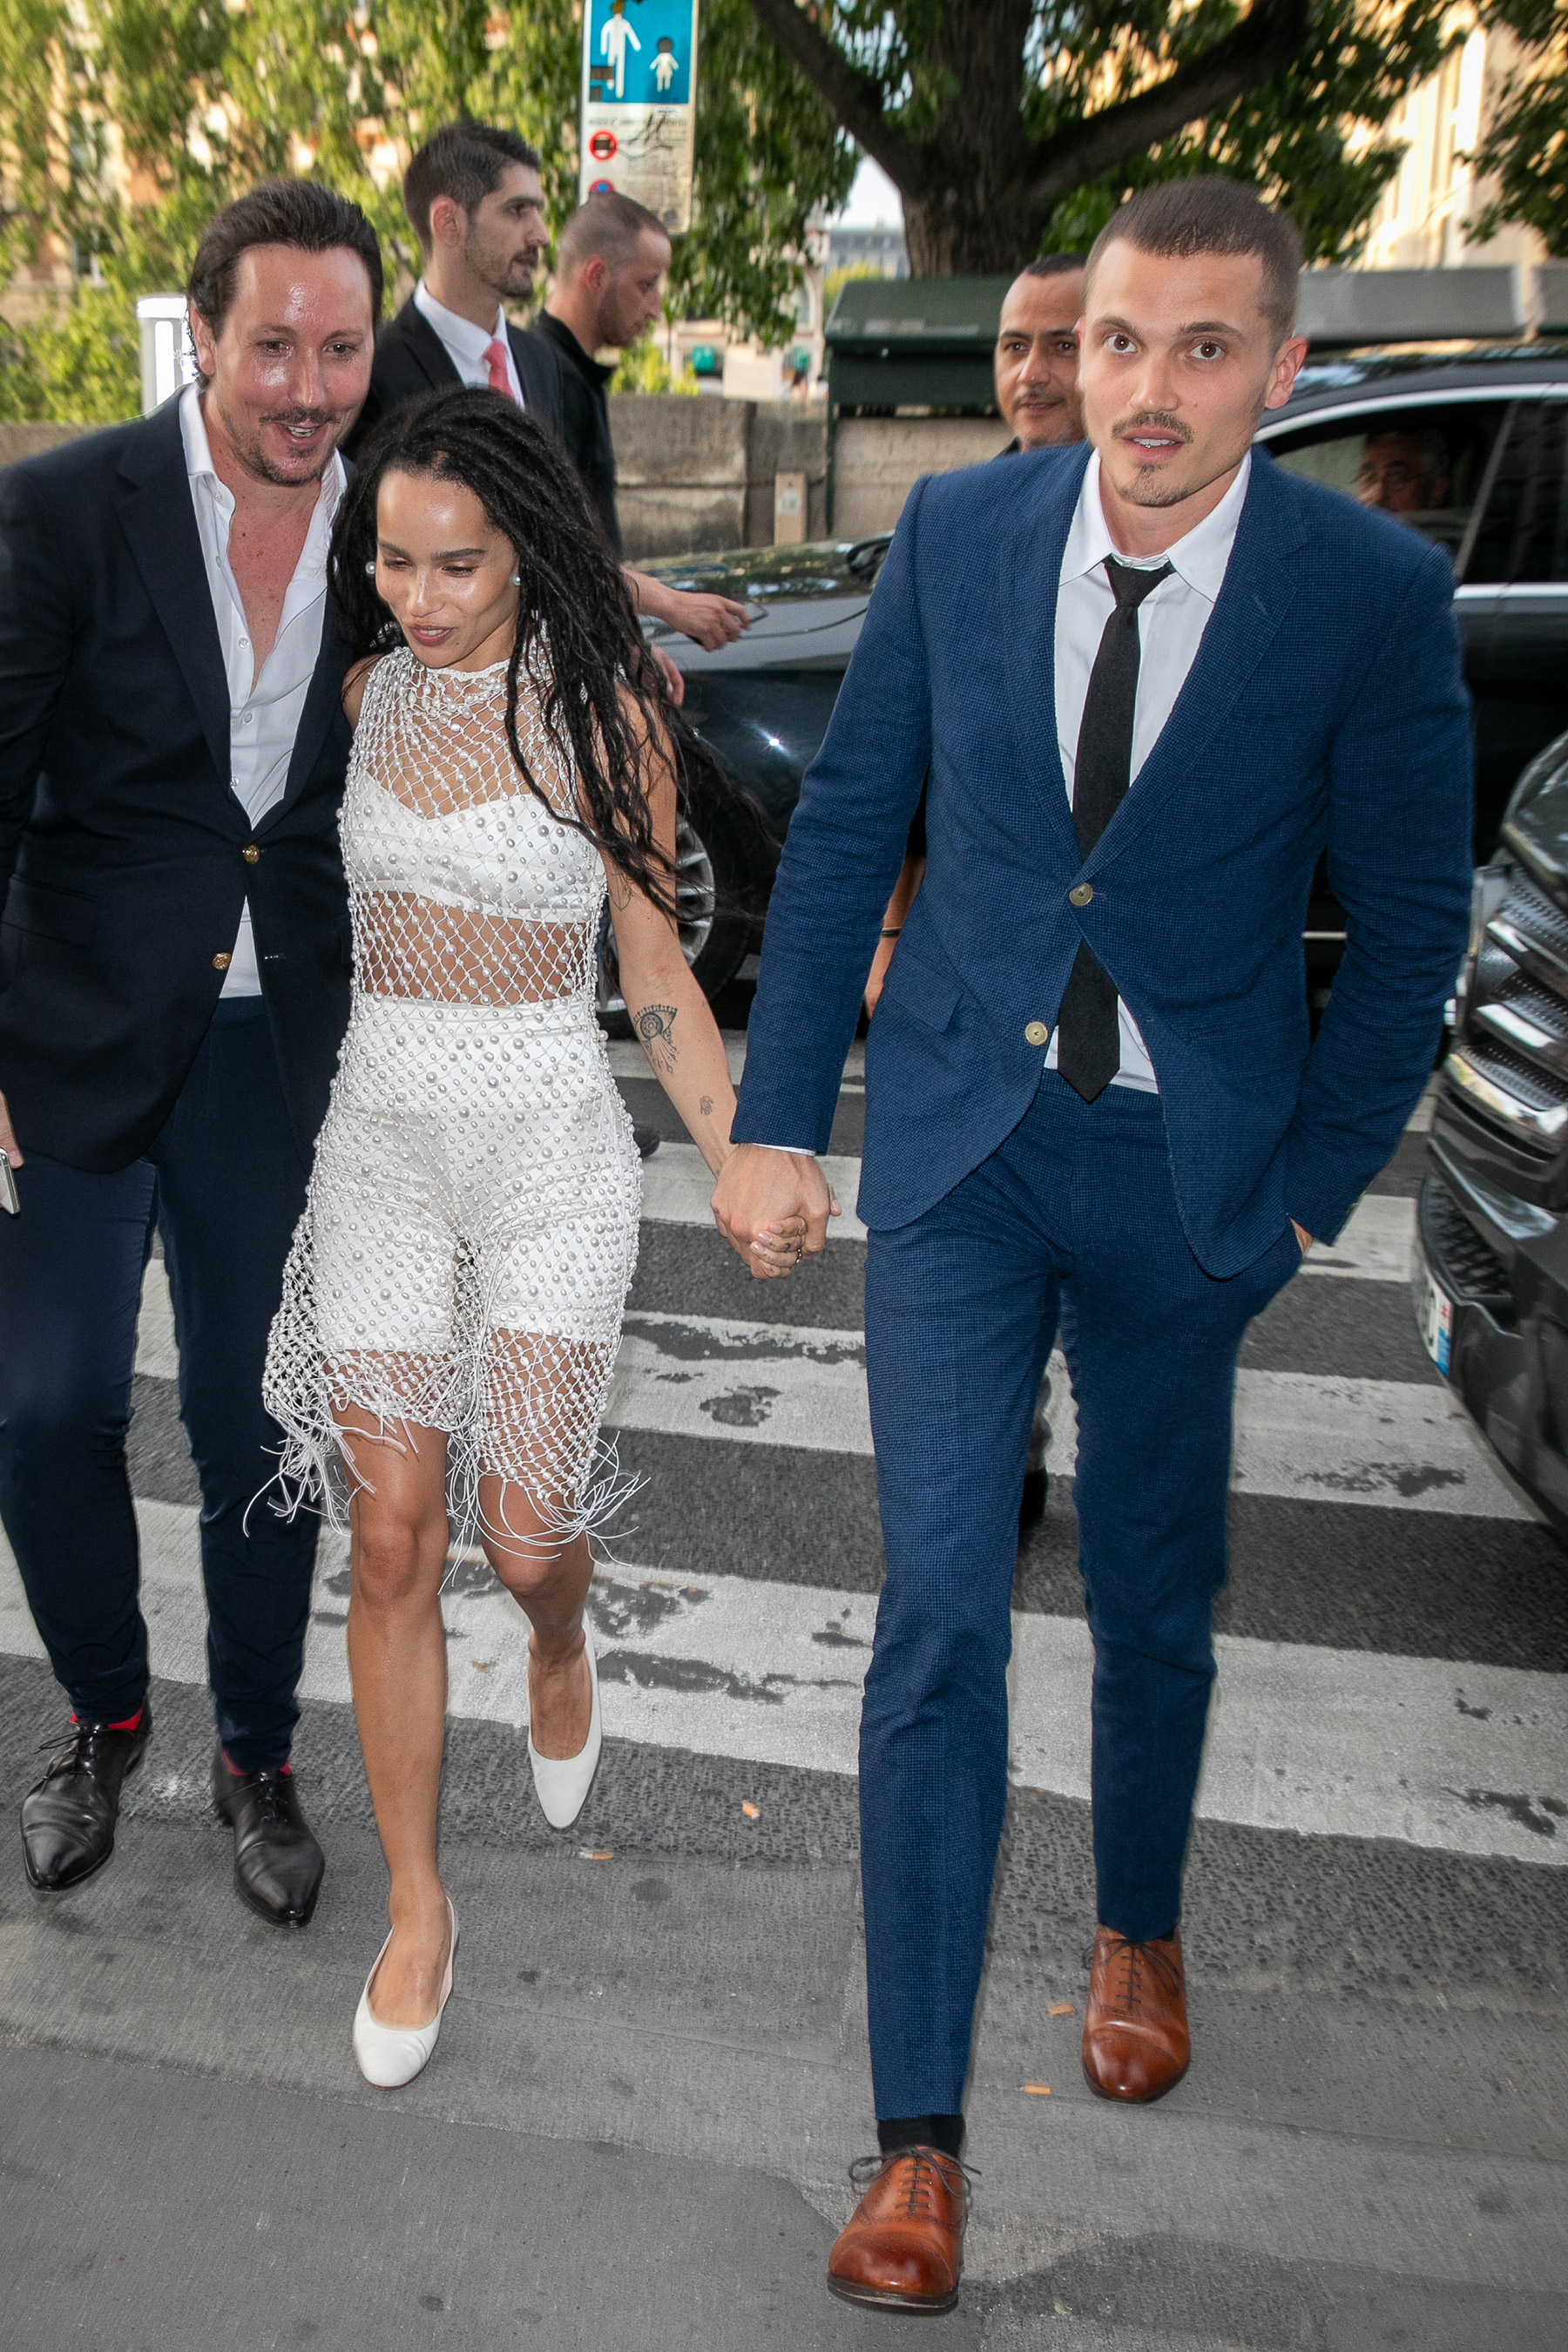 Zoë Kravitz Hits Up Her Pre-Wedding Bash with Mom and Dad